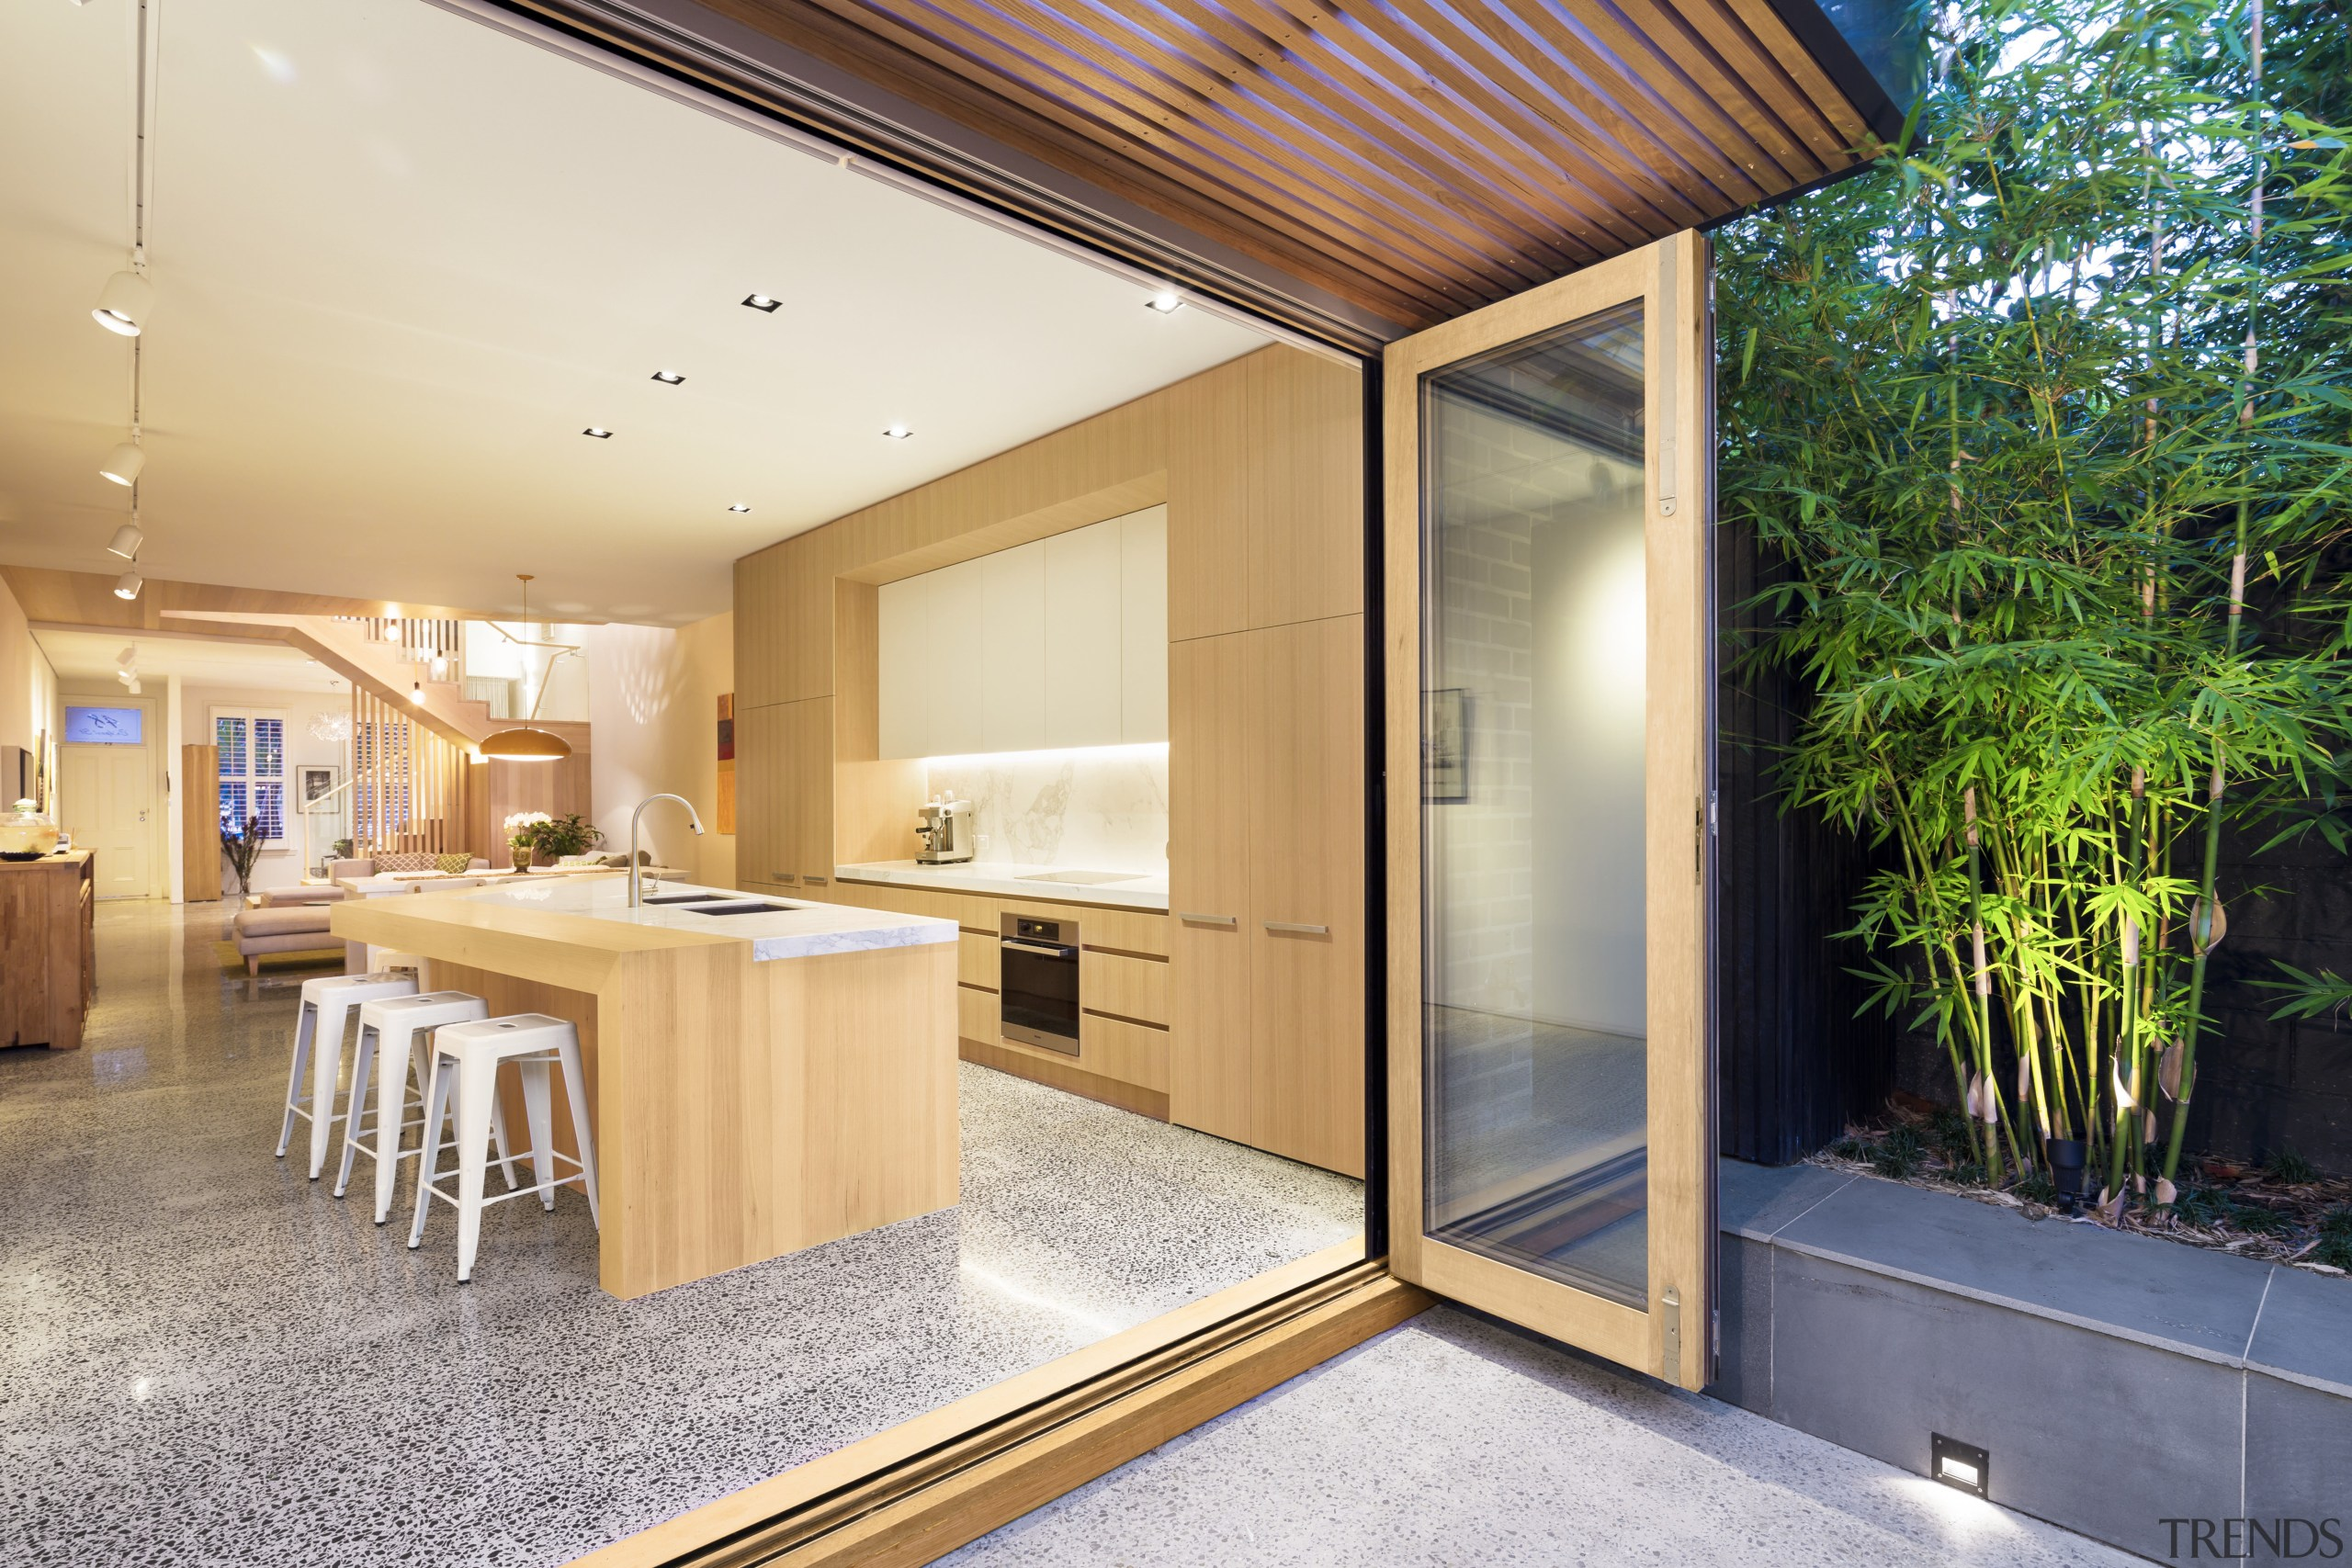 Understated, yet packed with hidden functionality, this kitchen architecture, home, house, interior design, real estate, orange, white